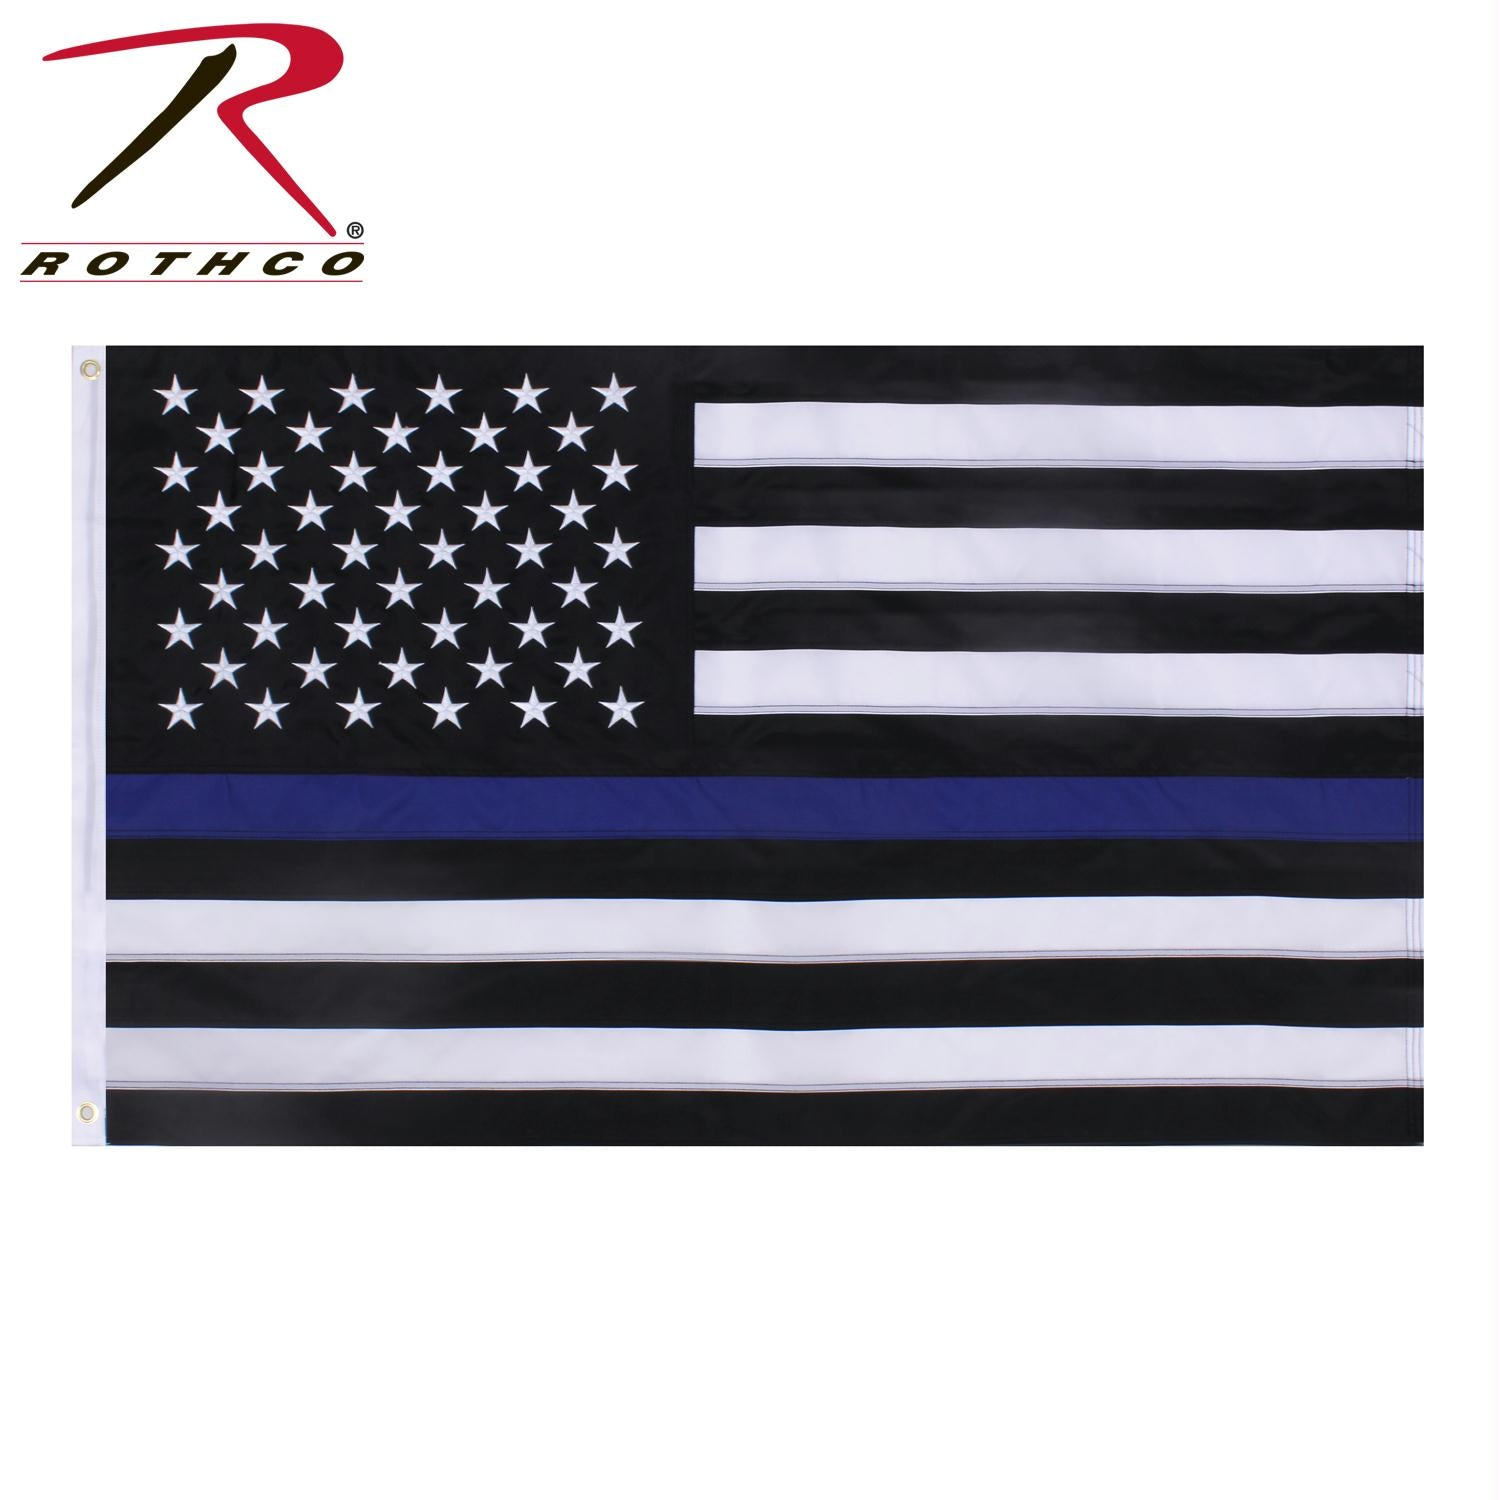 Rothco Deluxe Thin Blue Line Flag - Black